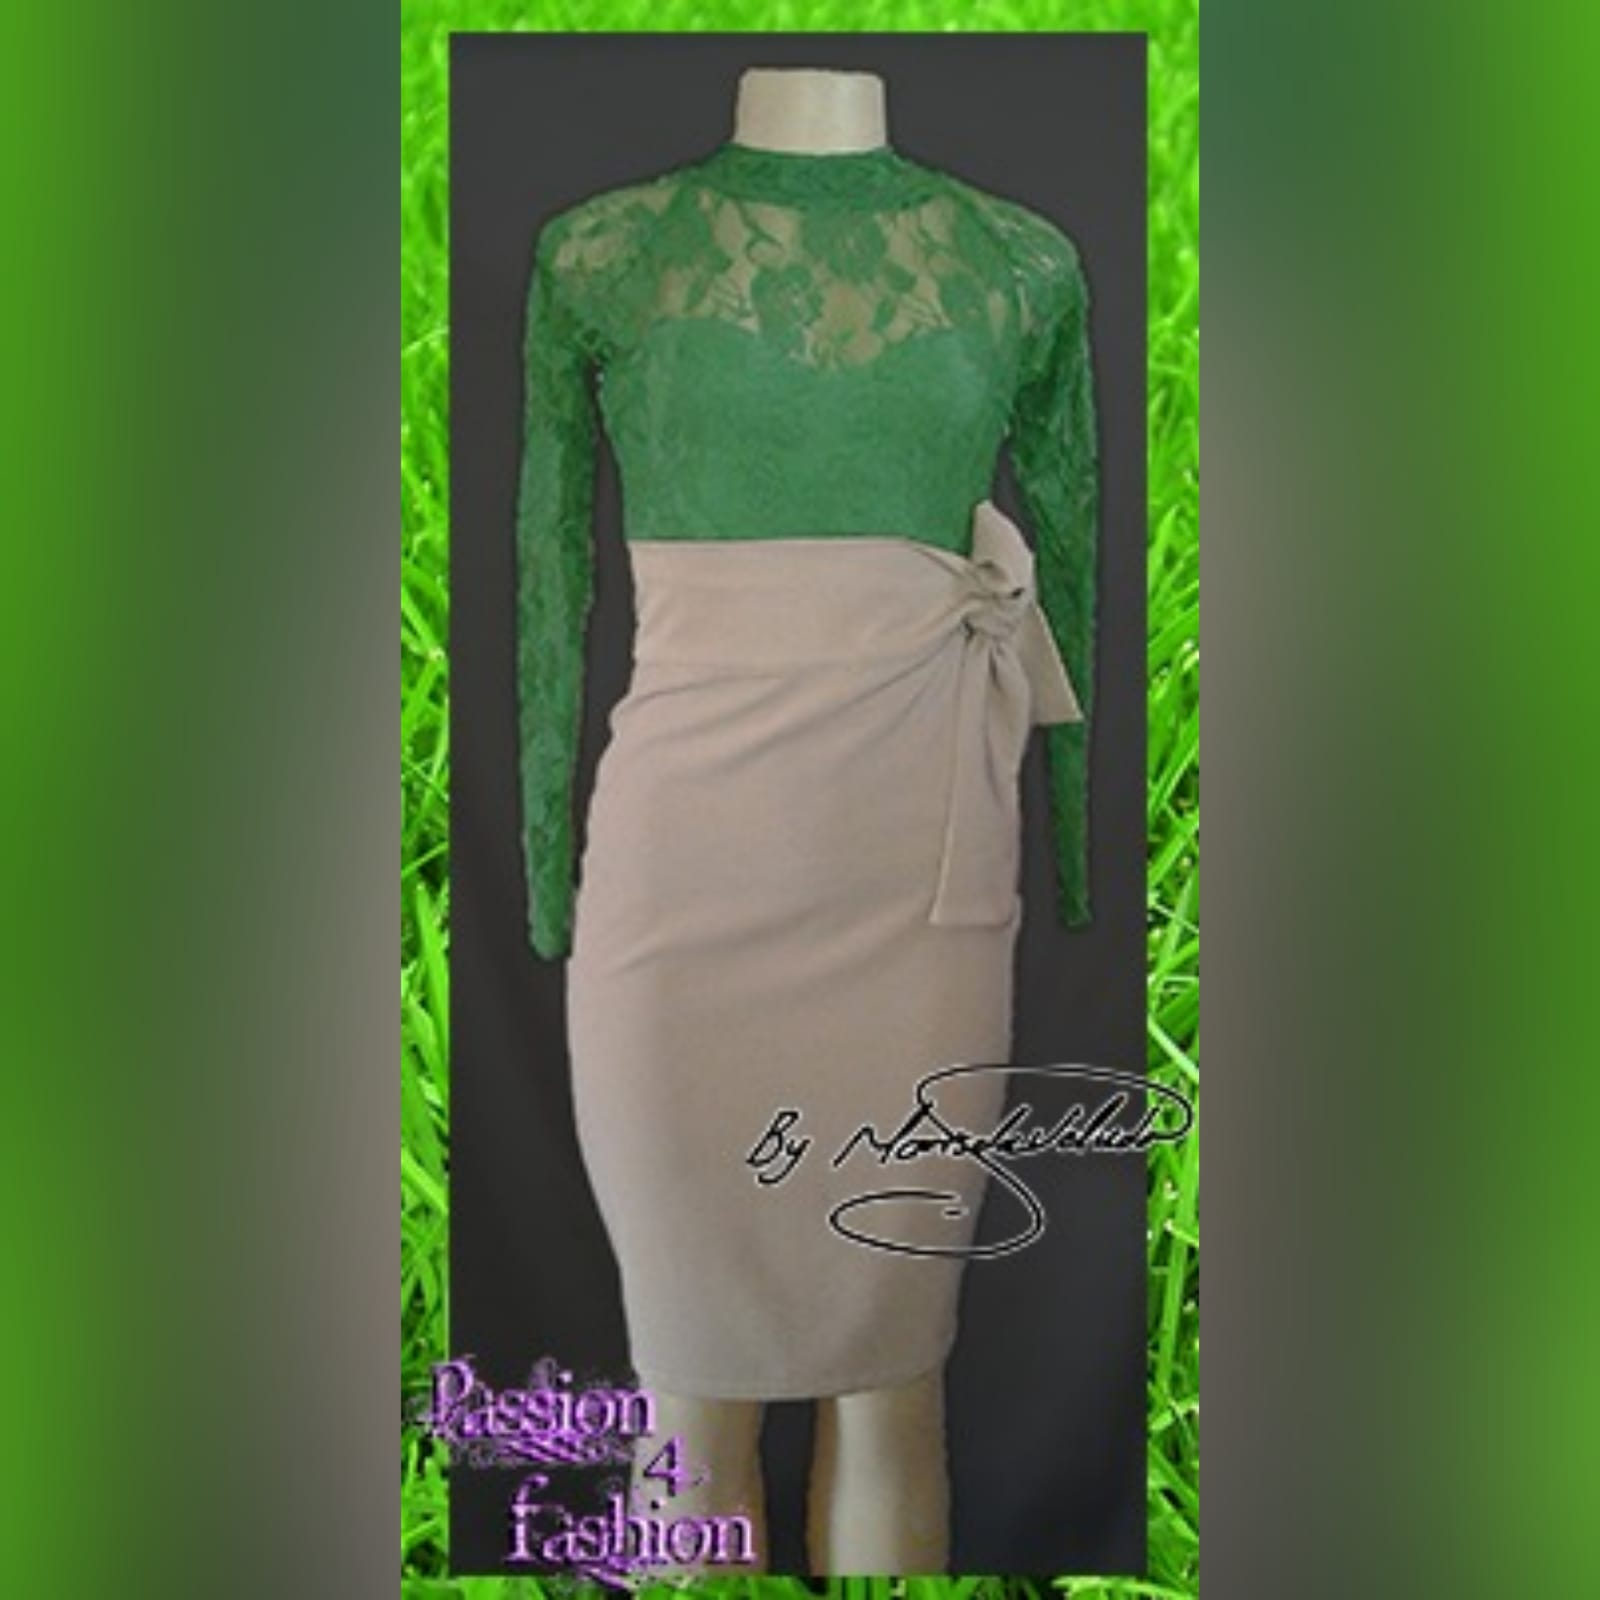 2 piece beige and green smart casual outfit 1 2 piece beige and green smart casual outfit. A pencil skirt with a tie-up waistband. With a lace top with long sleeve.